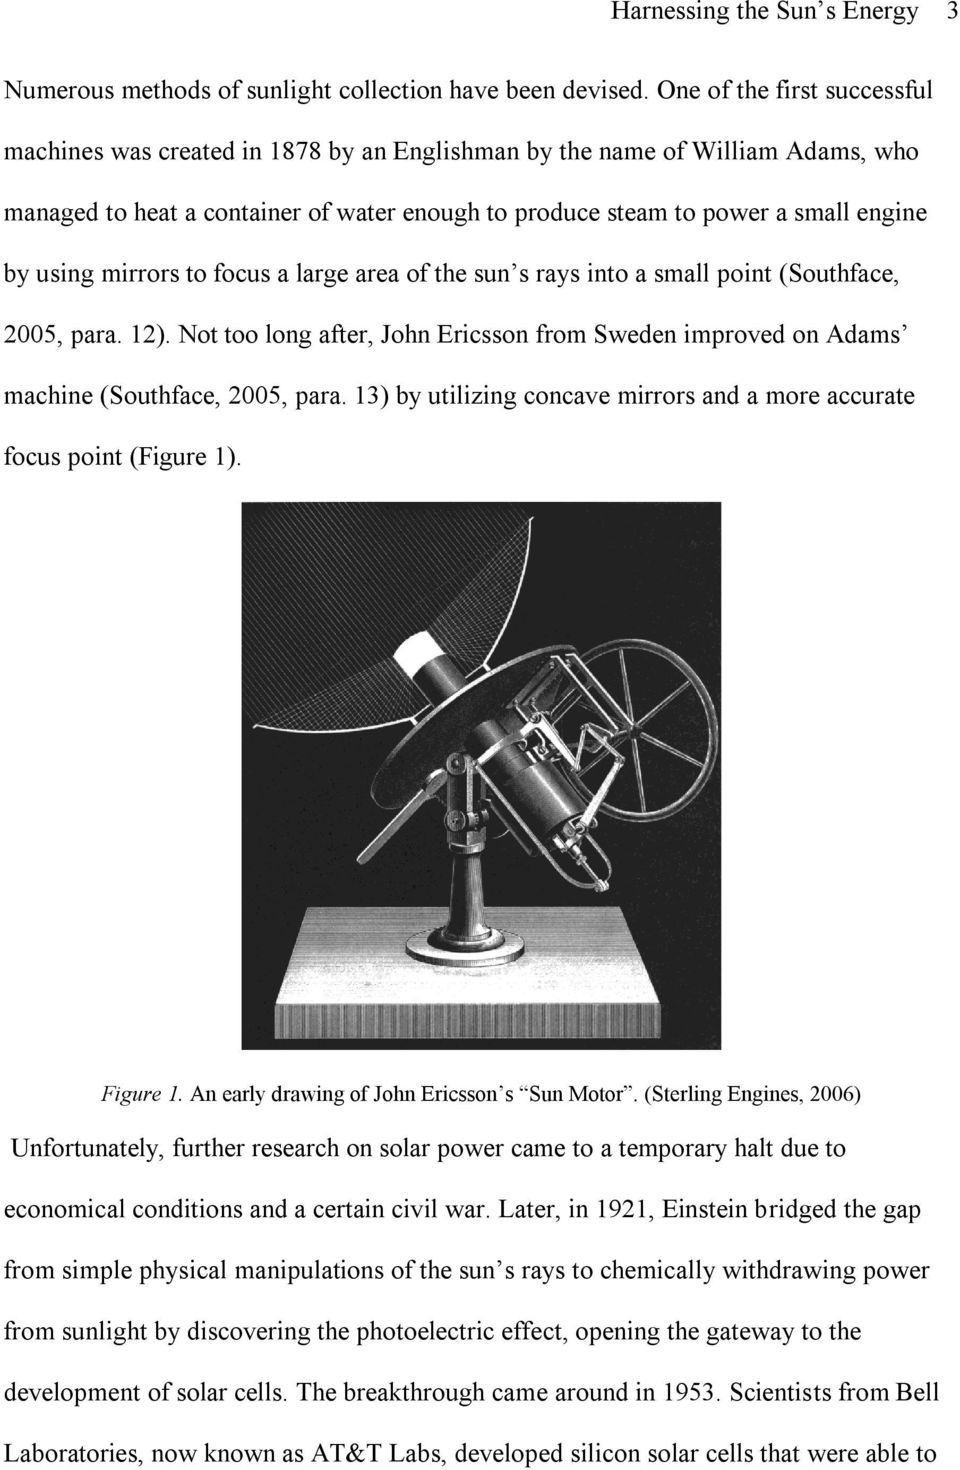 using mirrors to focus a large area of the sun s rays into a small point (Southface, 2005, para. 12). Not too long after, John Ericsson from Sweden improved on Adams machine (Southface, 2005, para.